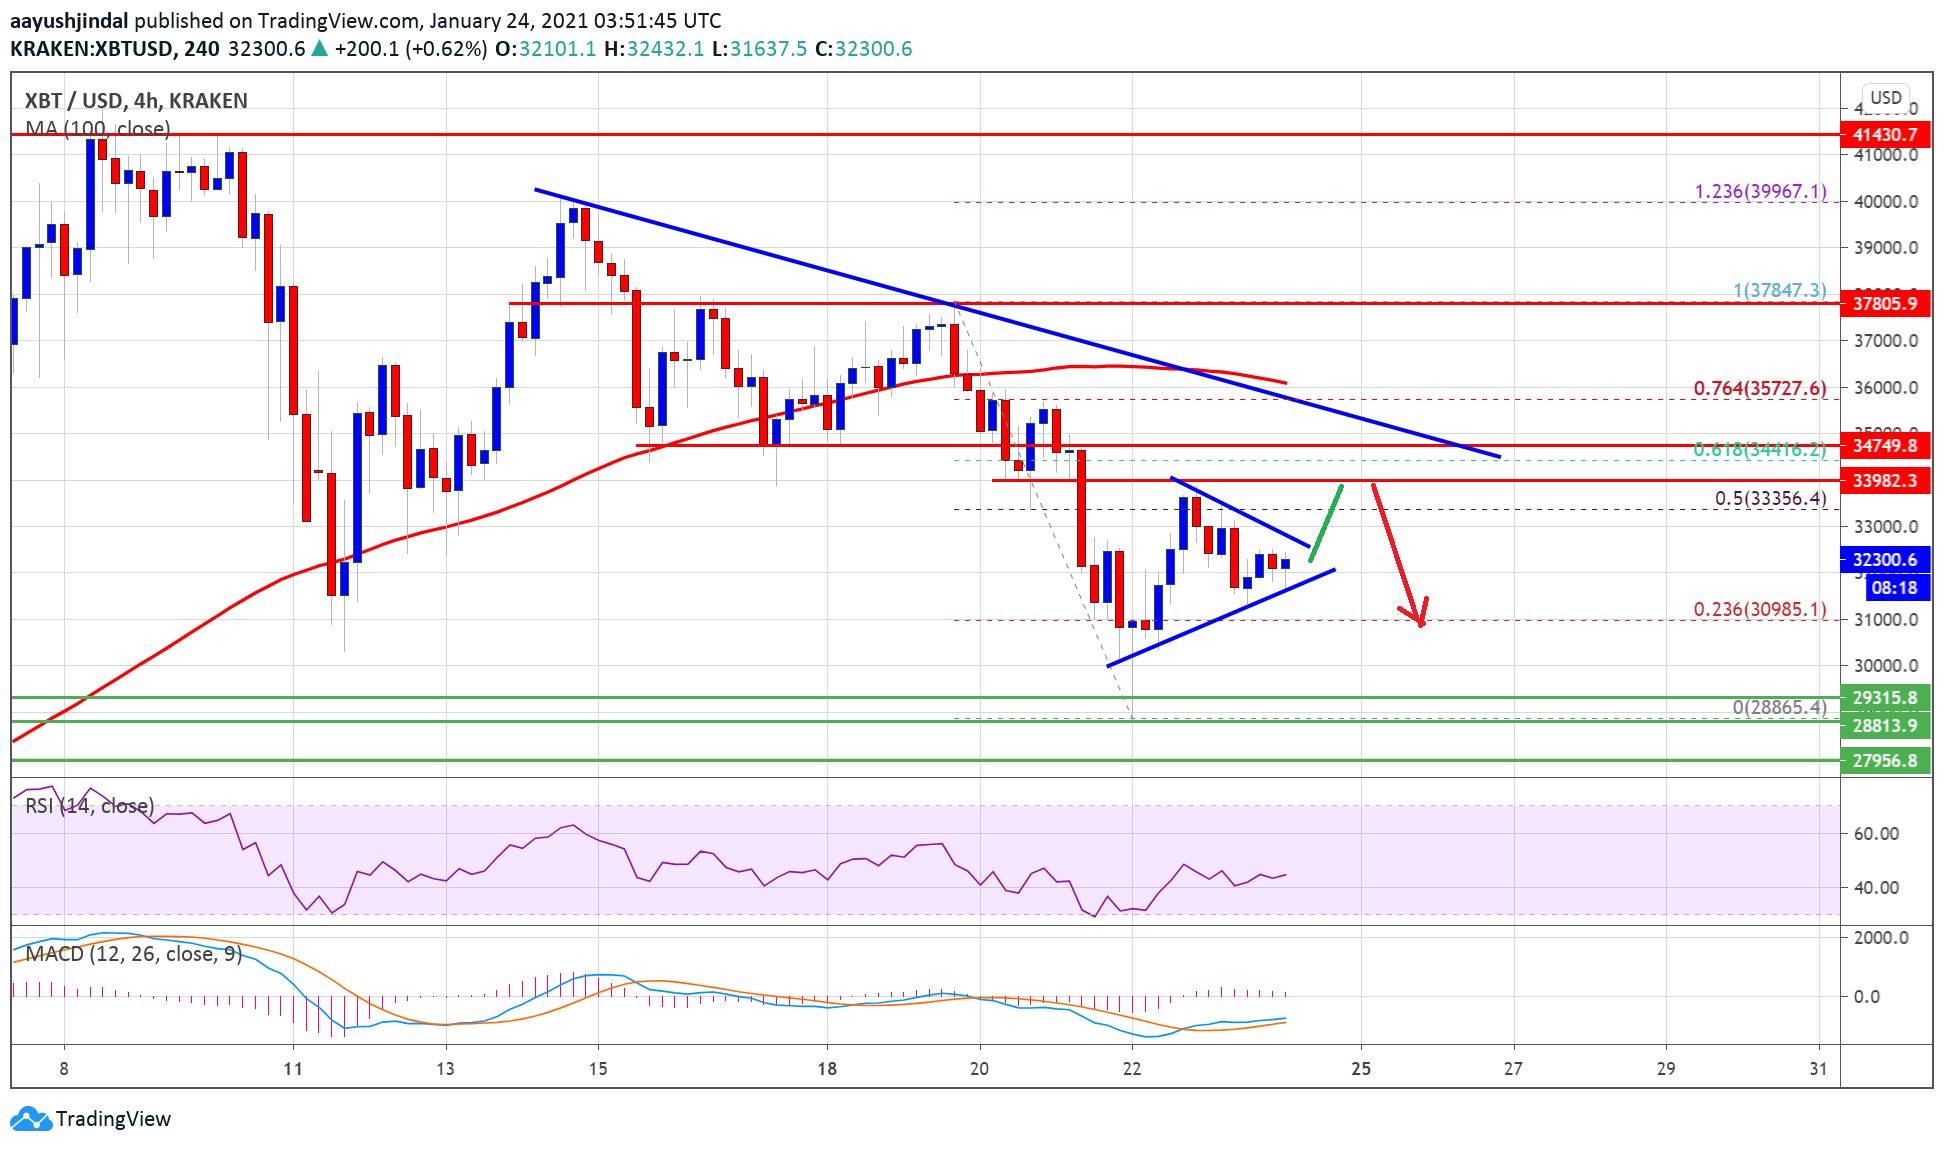 Bitcoin Facing Uphill Task, Why BTC Could Drop To $30K Again